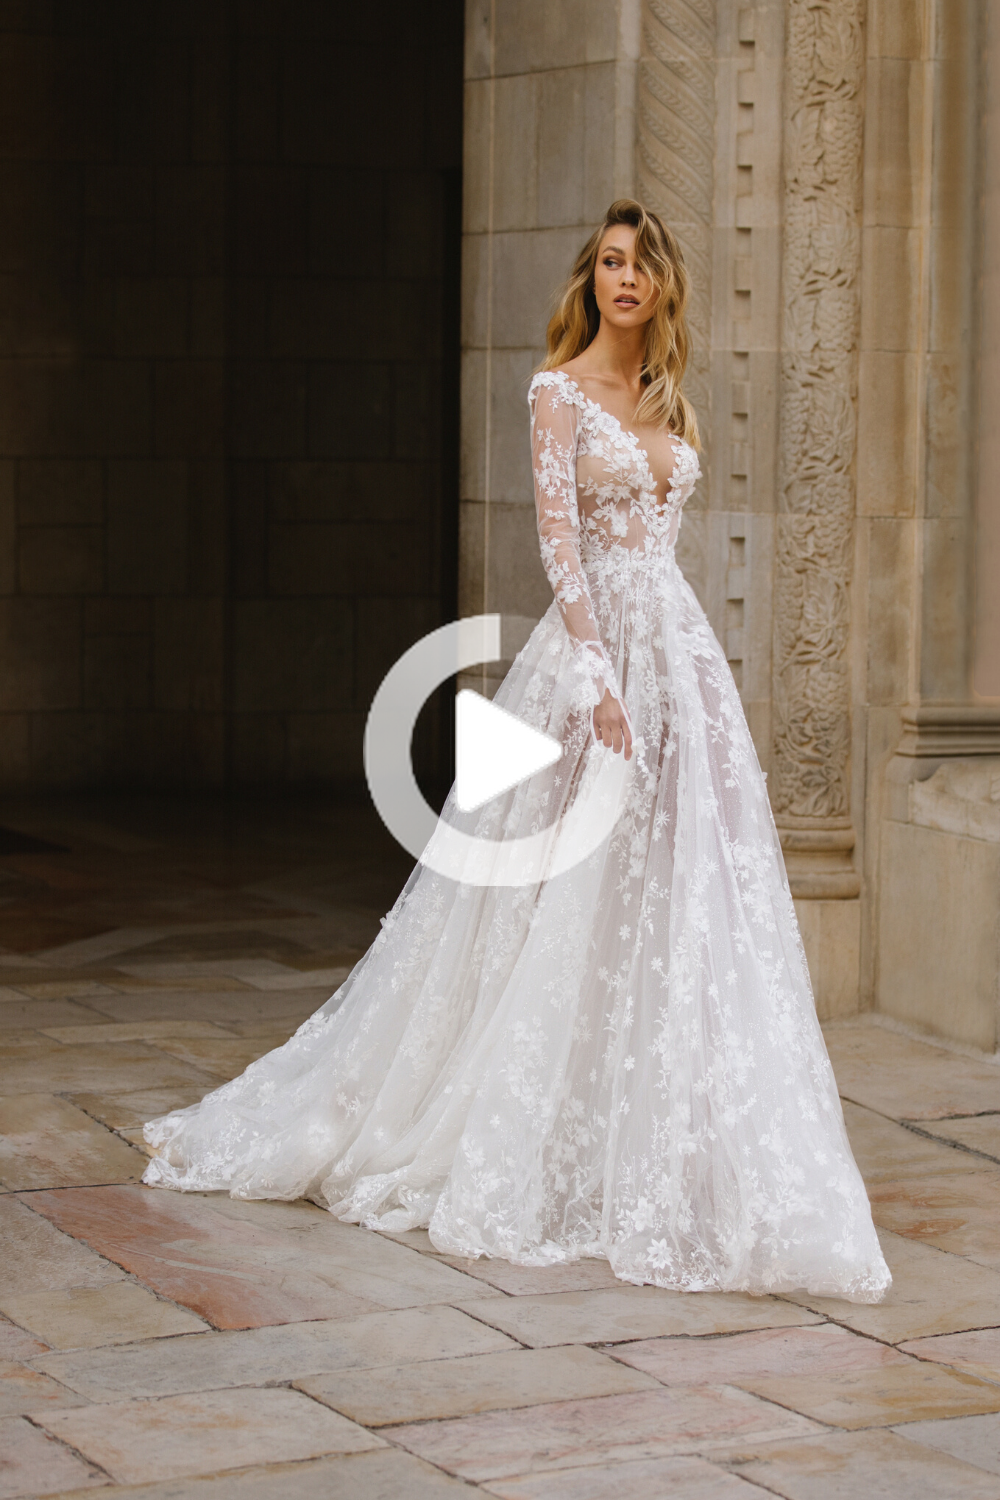 Romantic 3D embellishments scatter throughout this A-line gown with long fitted sleeves and deep plu...